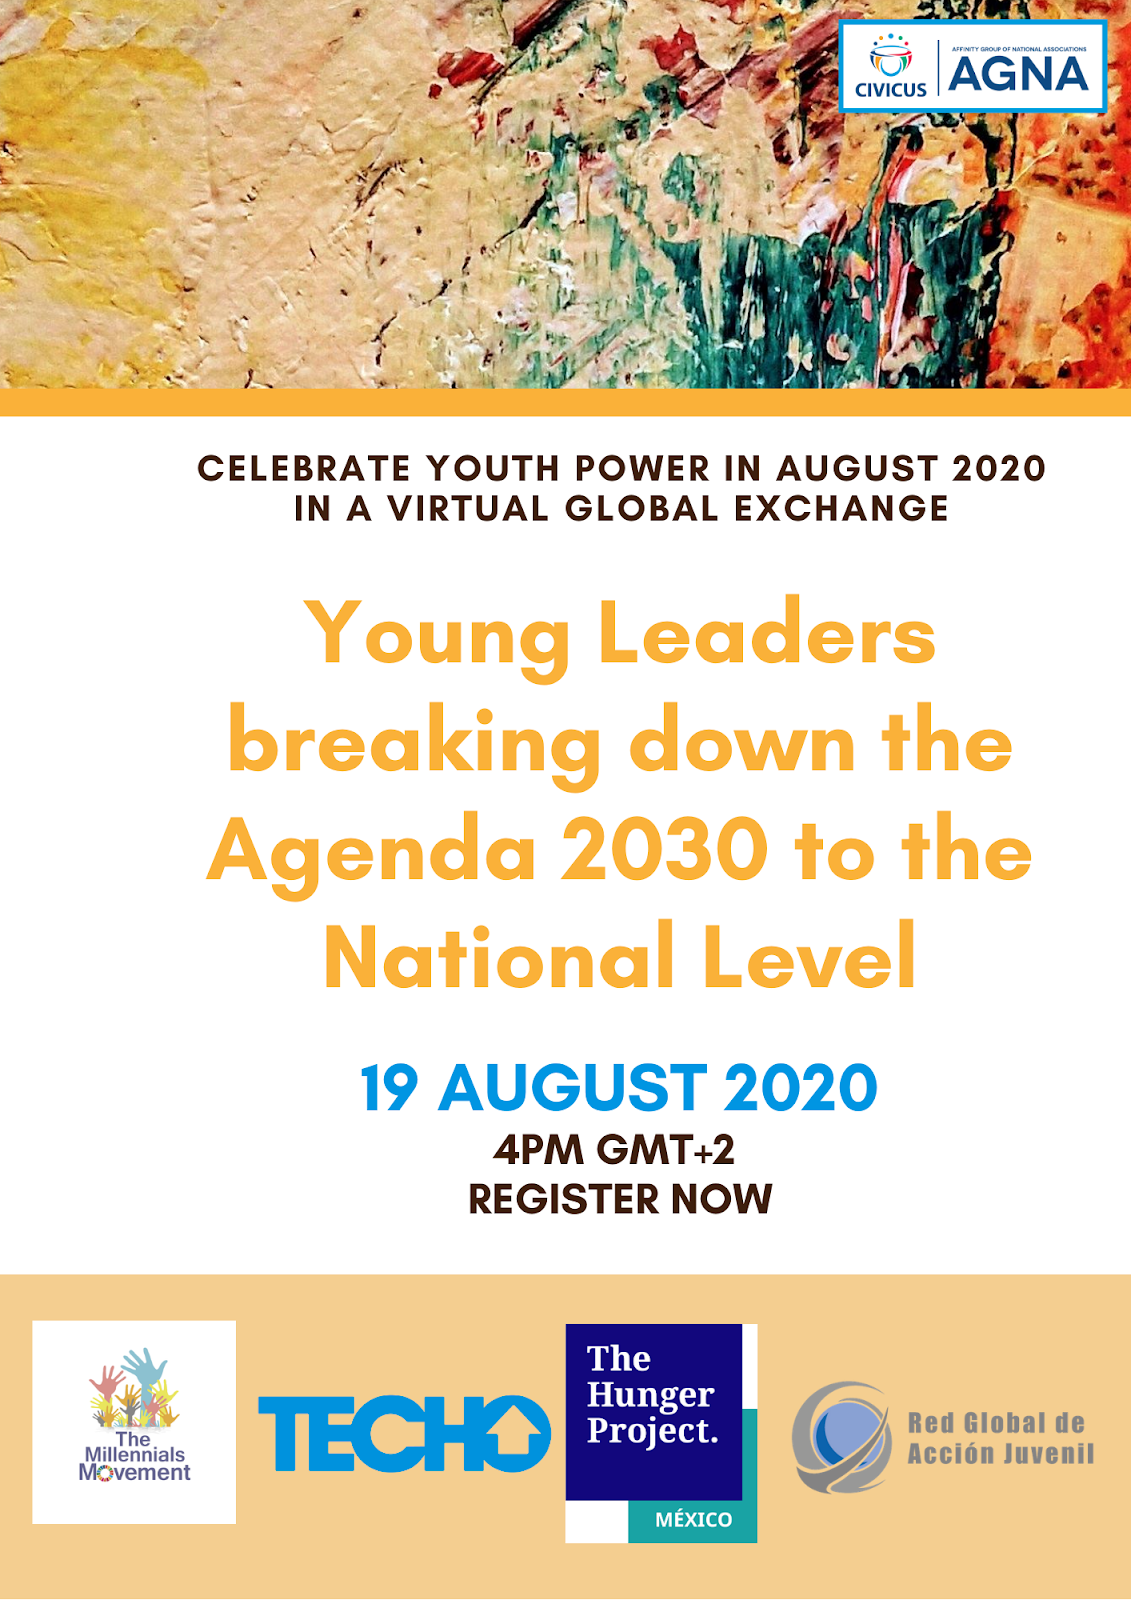 agna young leaders breaking down the Agenda 2030